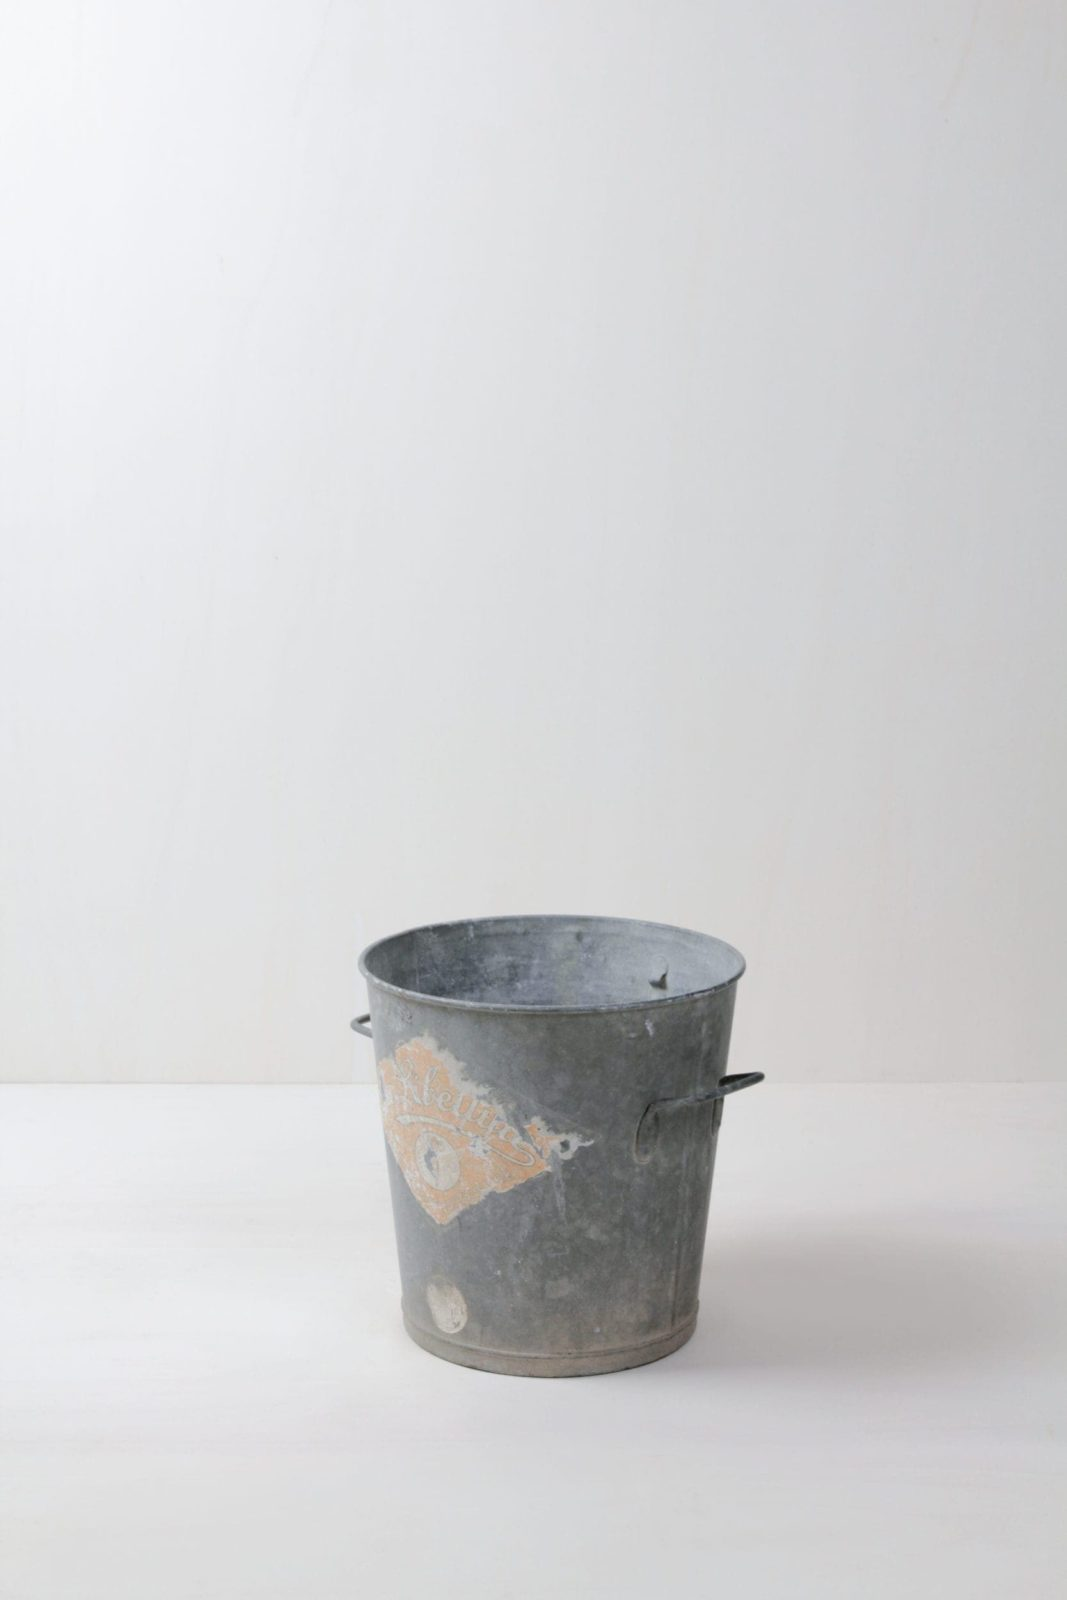 Metal Bucket Cristiano | Perfect for arranging decoration. Real patina. | gotvintage Rental & Event Design